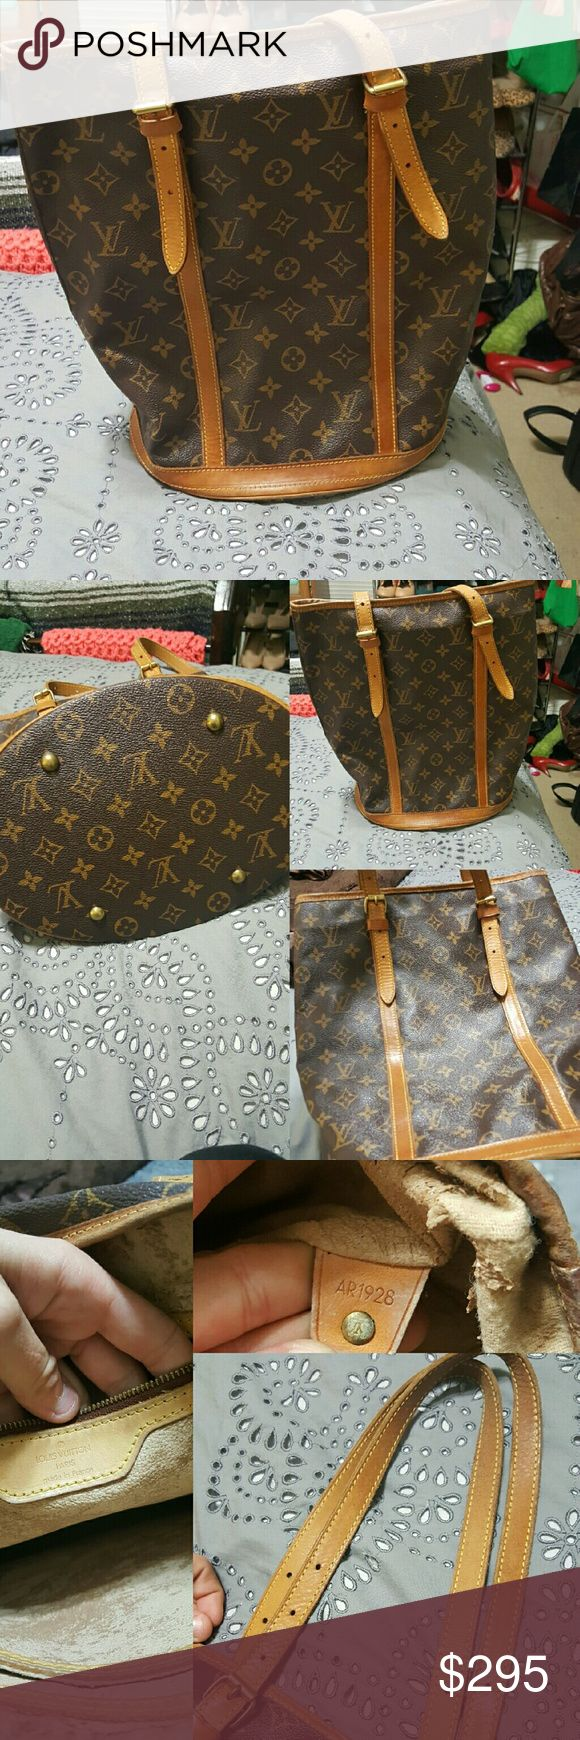 Authentic Louis Vuitton bucket bag GM firm price! Authentic Louis Vuitton bucket bag GM size. This is a vintage bag and the exterior of it looks very good. The straps are in good condition and the exterior and bottom of the bag are also in good condition. The inside of the bag is peeling as bucket bags have been known to do from Louis Vuitton. It could be taken to a Louis Vuitton store or you could even remove the parts that are peeling yourself. Please ask any questions. Does not come with…